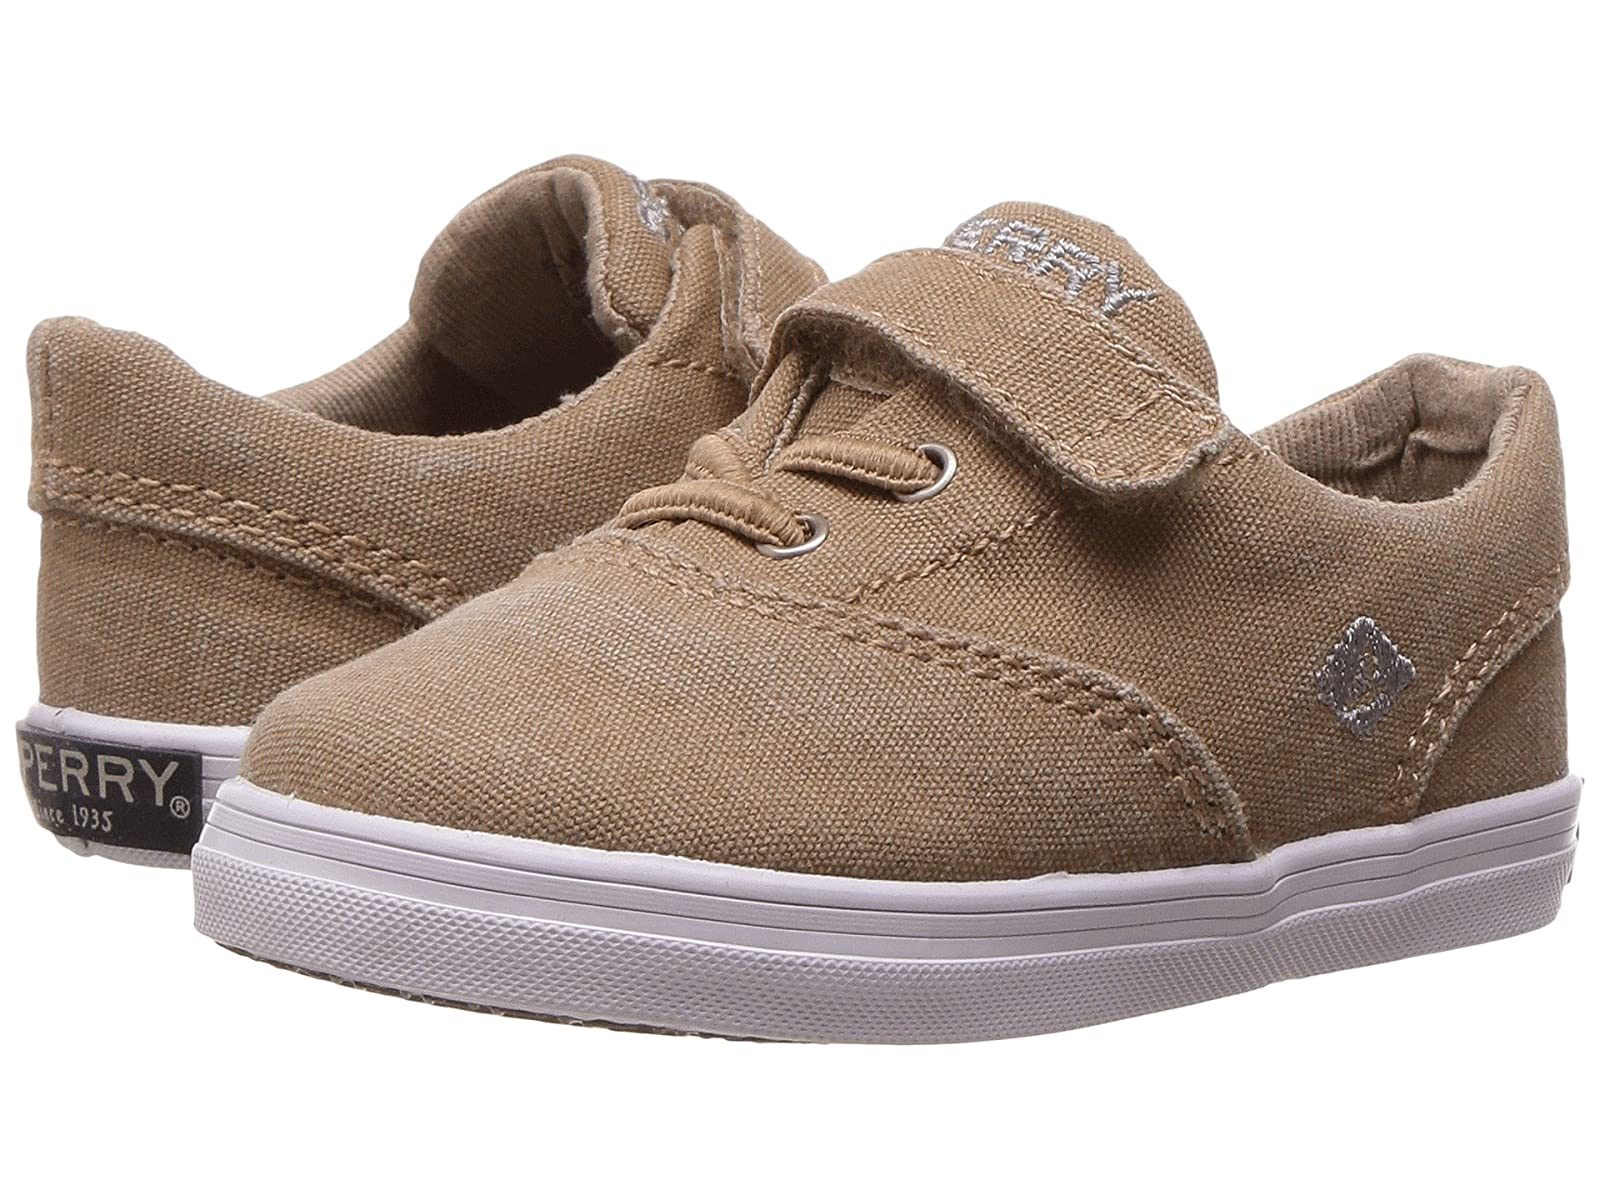 Sperry Kids Wahoo Crib (Infant/Toddler)Atmospheric grades have affordable shoes